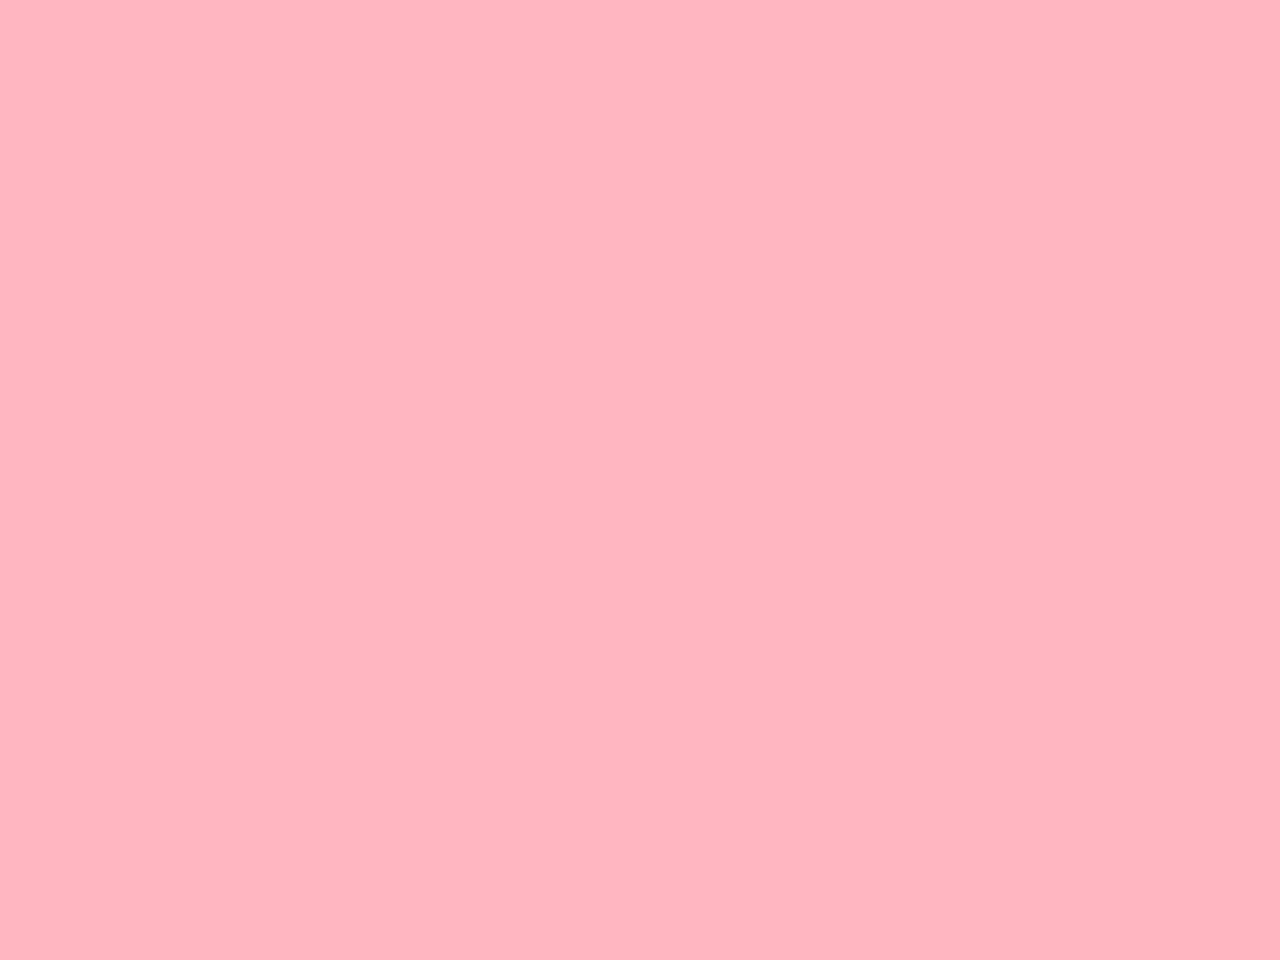 Privacy Policy >> 1280x960 Light Pink Solid Color Background